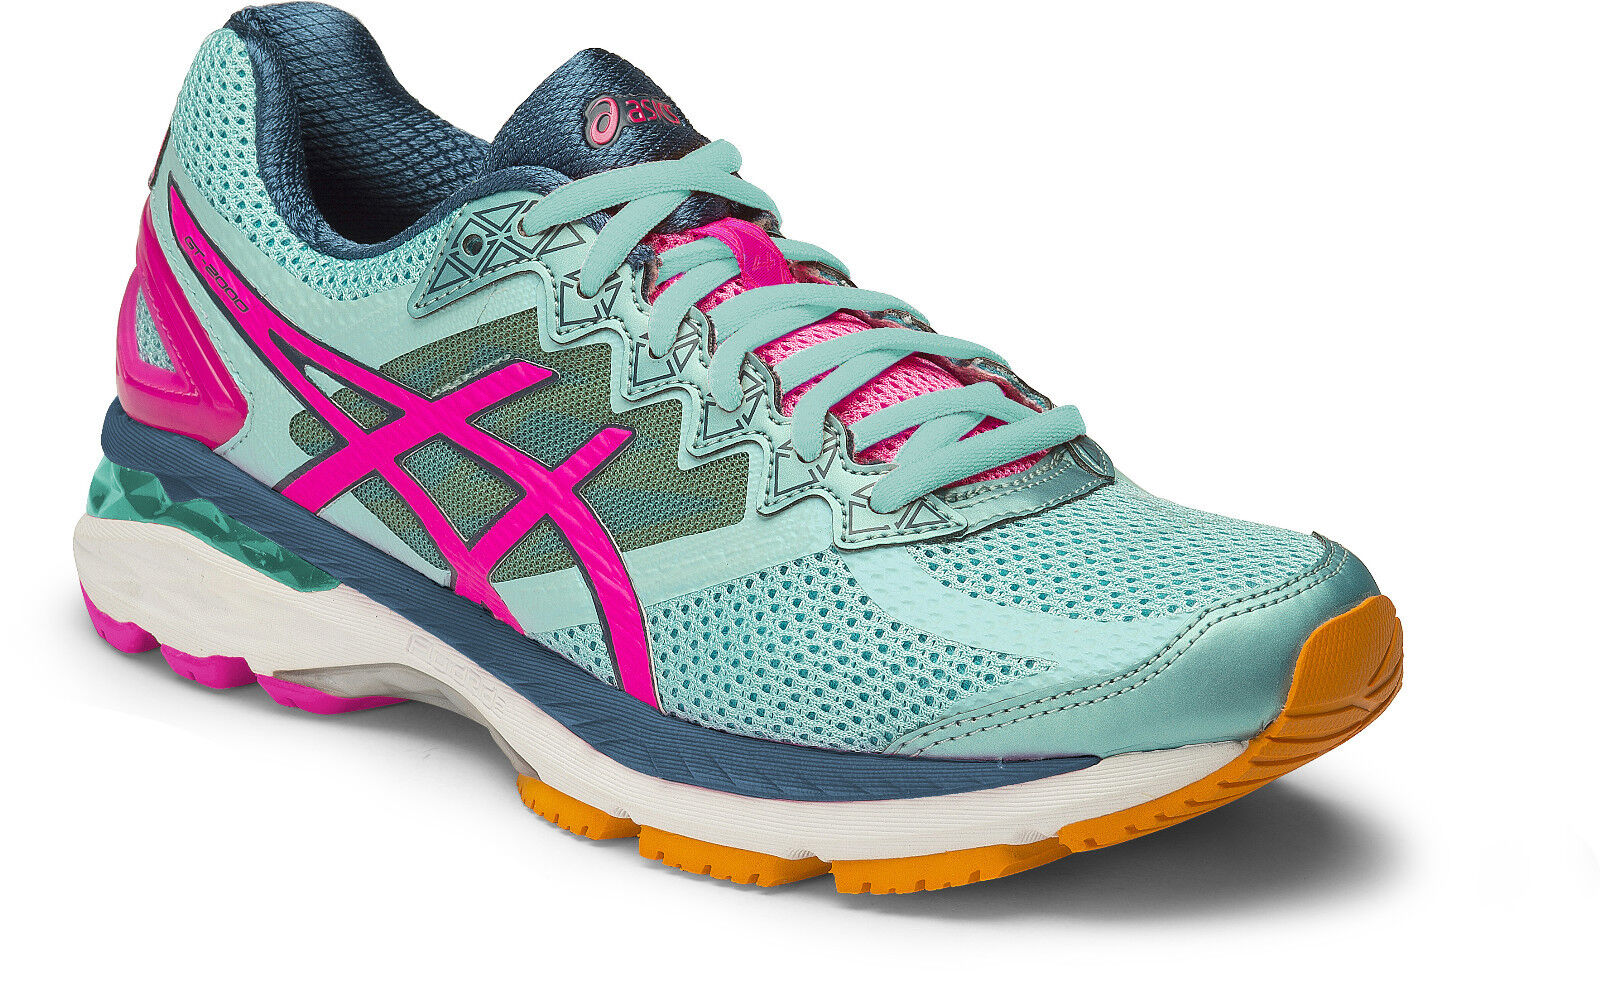 Asics GT 2000 4 Womens Running Shoes (2A) (4034) + Free Aus Delivery!